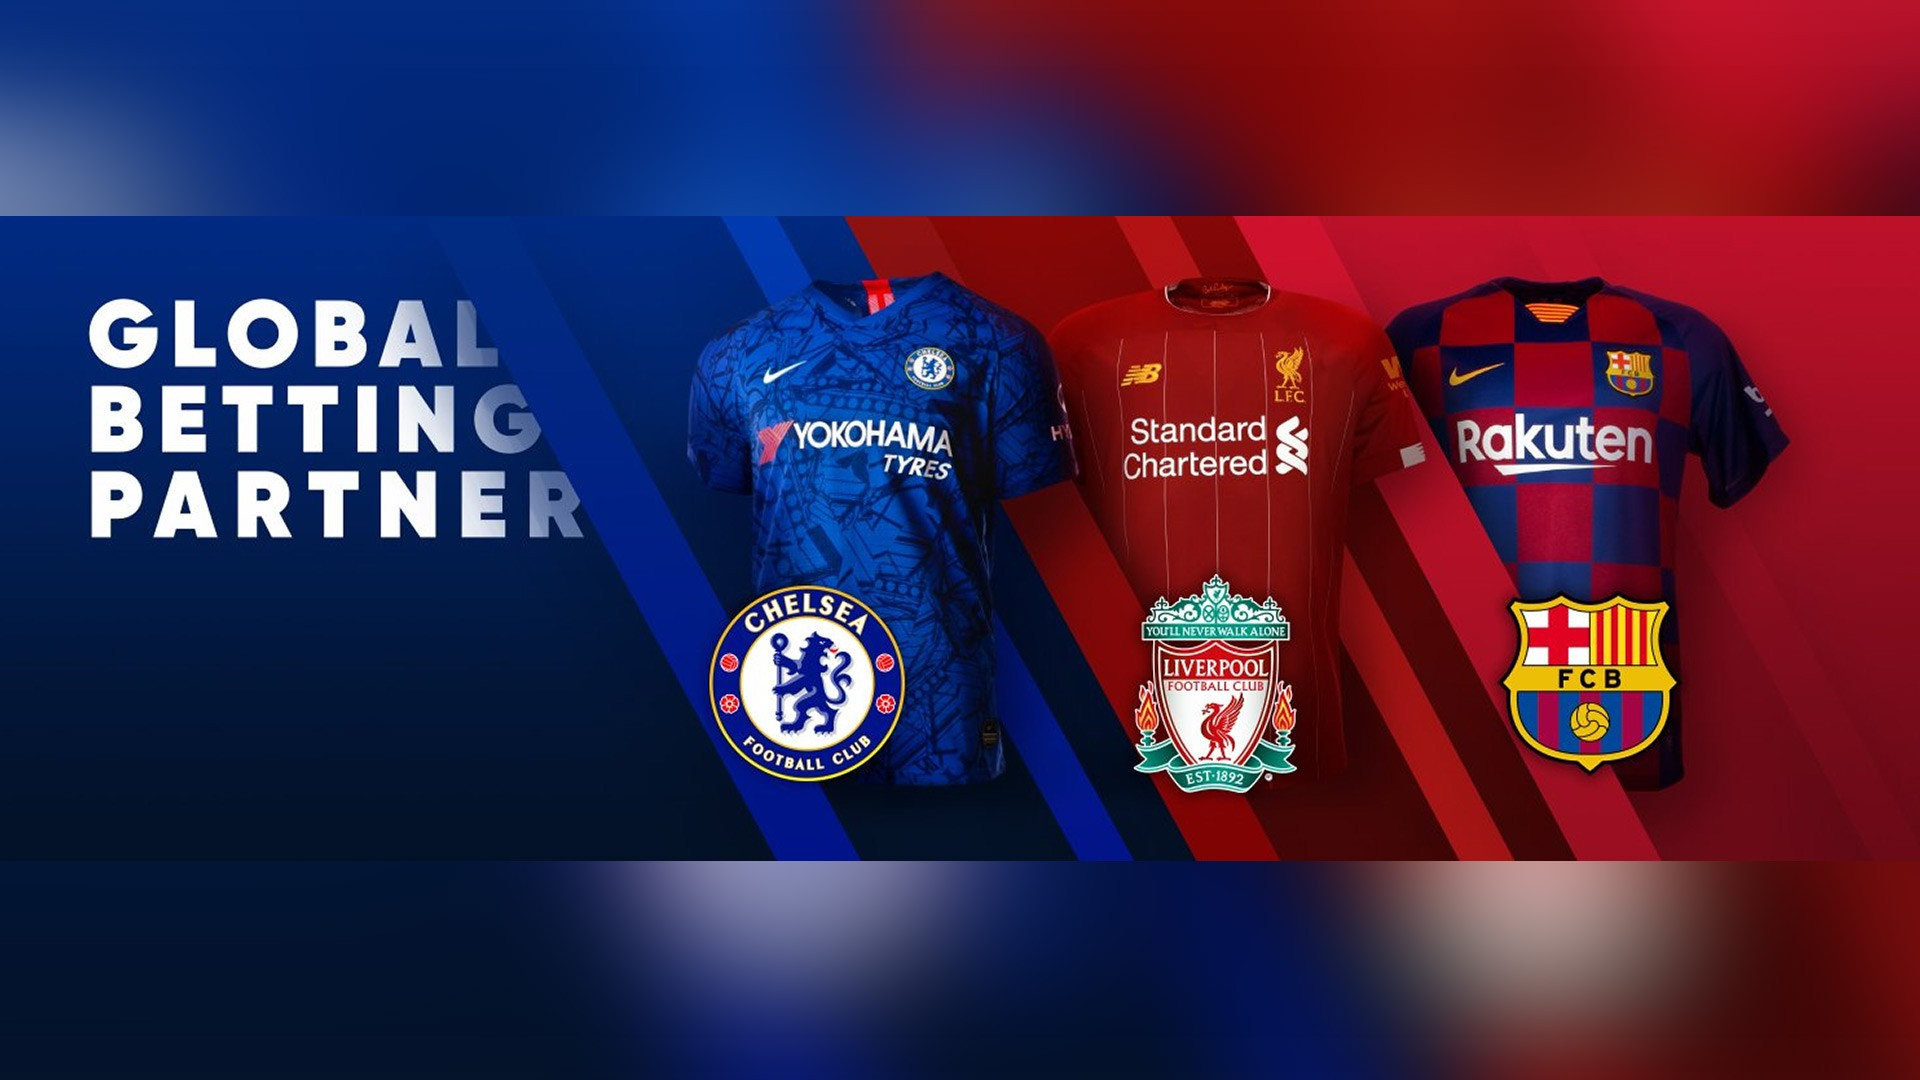 1xBet is a sponsor of Liverpool, Barcelona and Chelsea football clubs